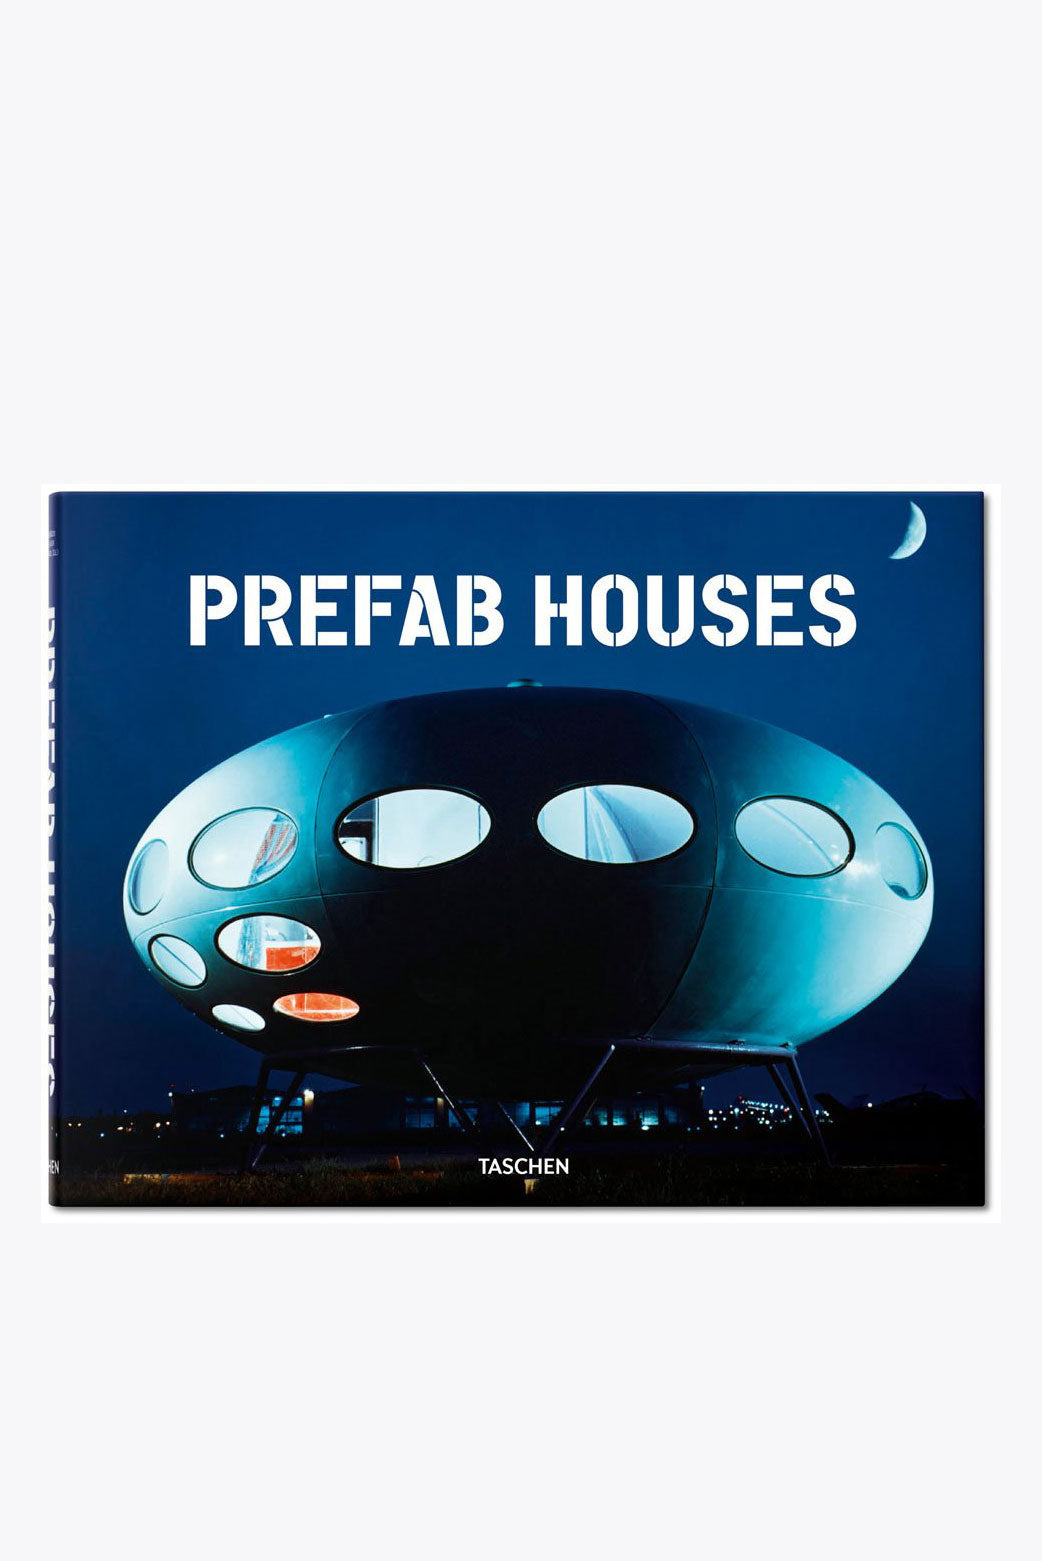 Prefab houses in hardcover